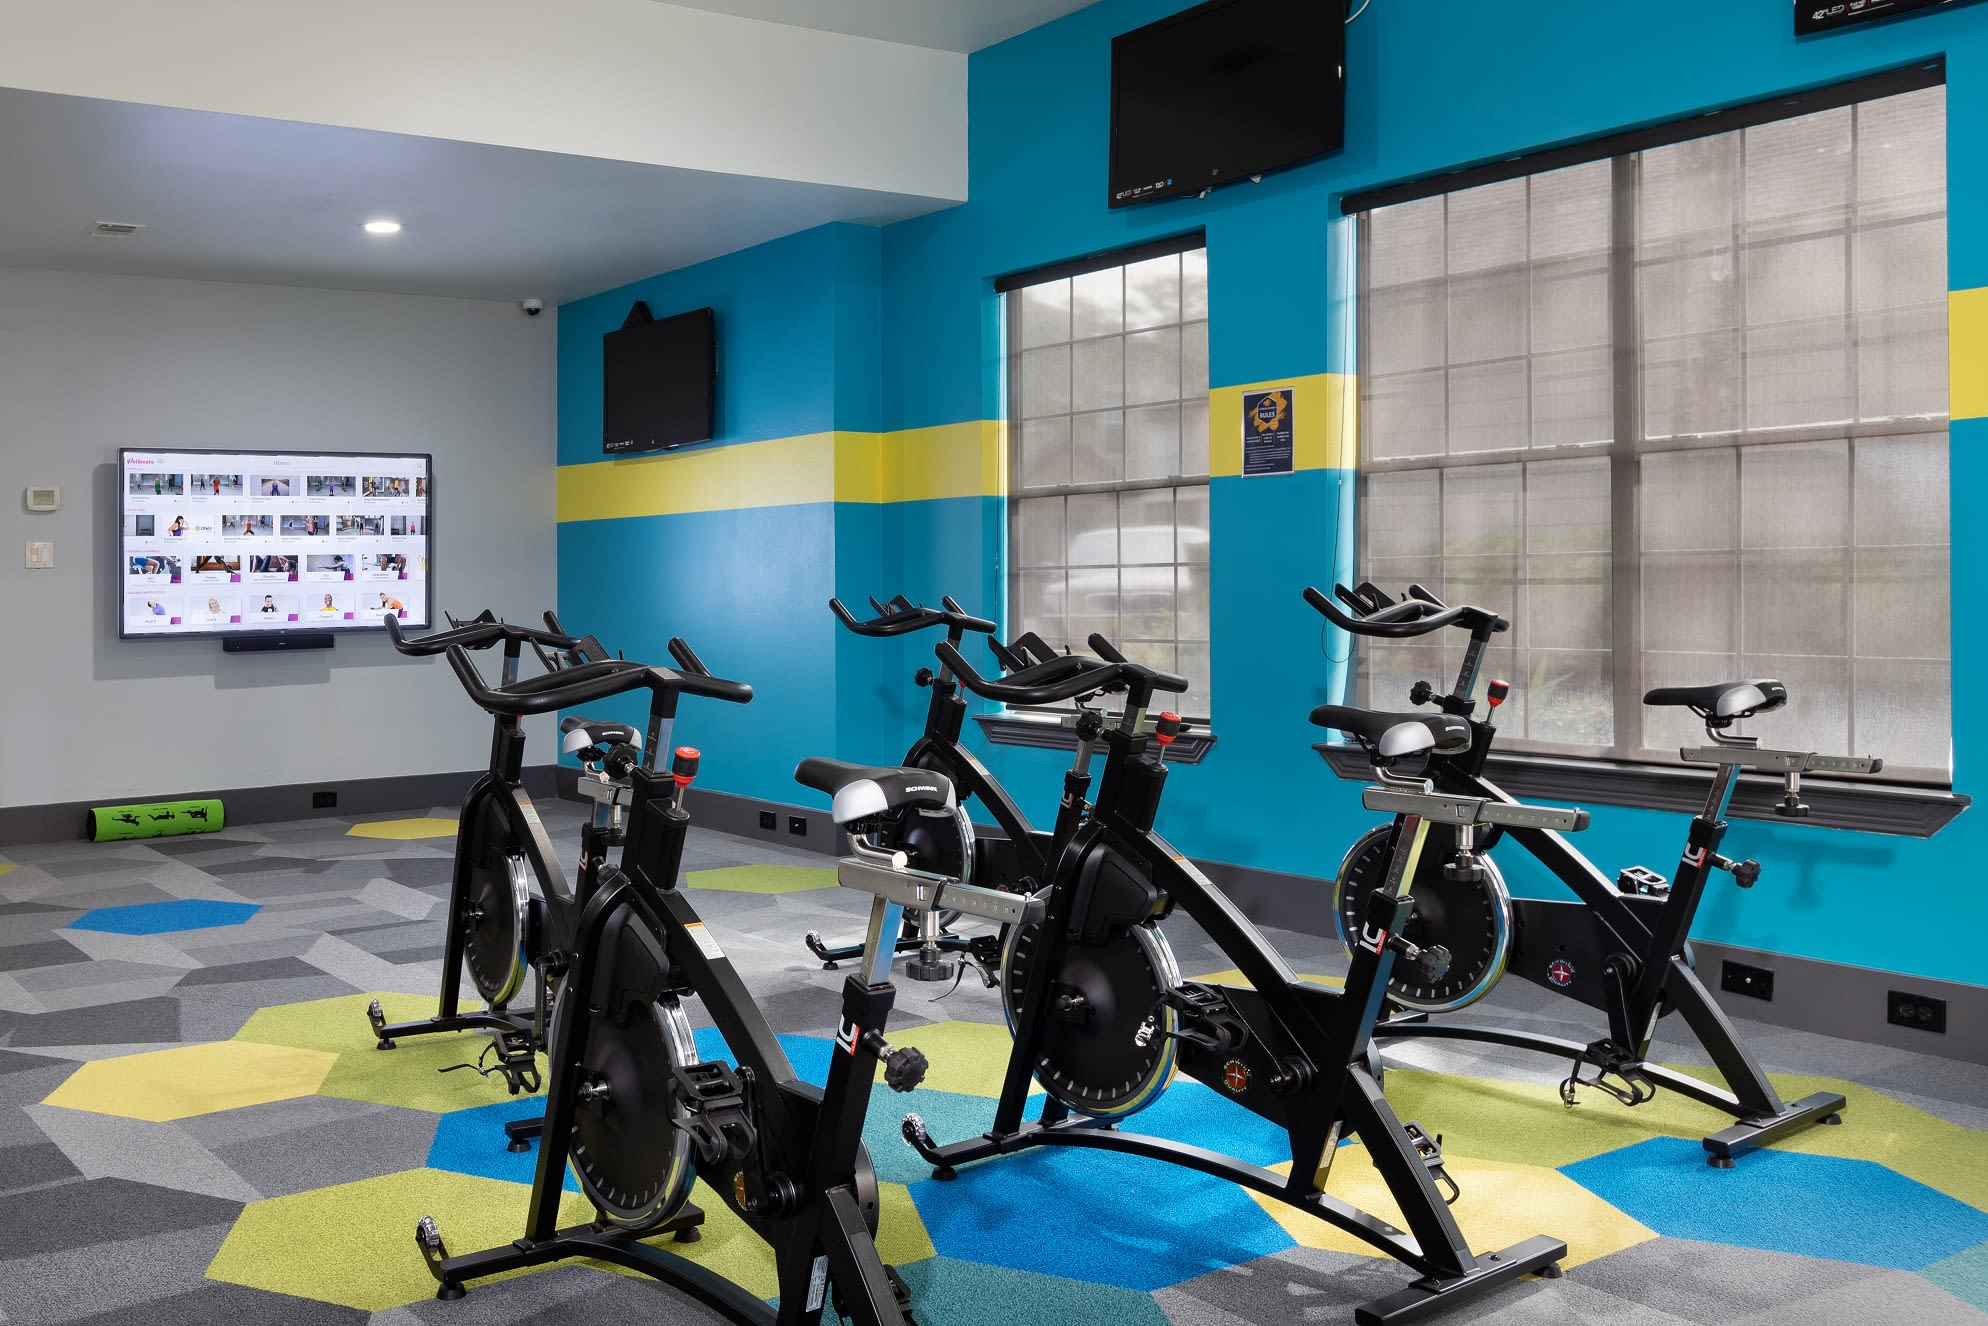 Cycling studio at Artisan at Lake Wyndemere in The Woodlands, Texas